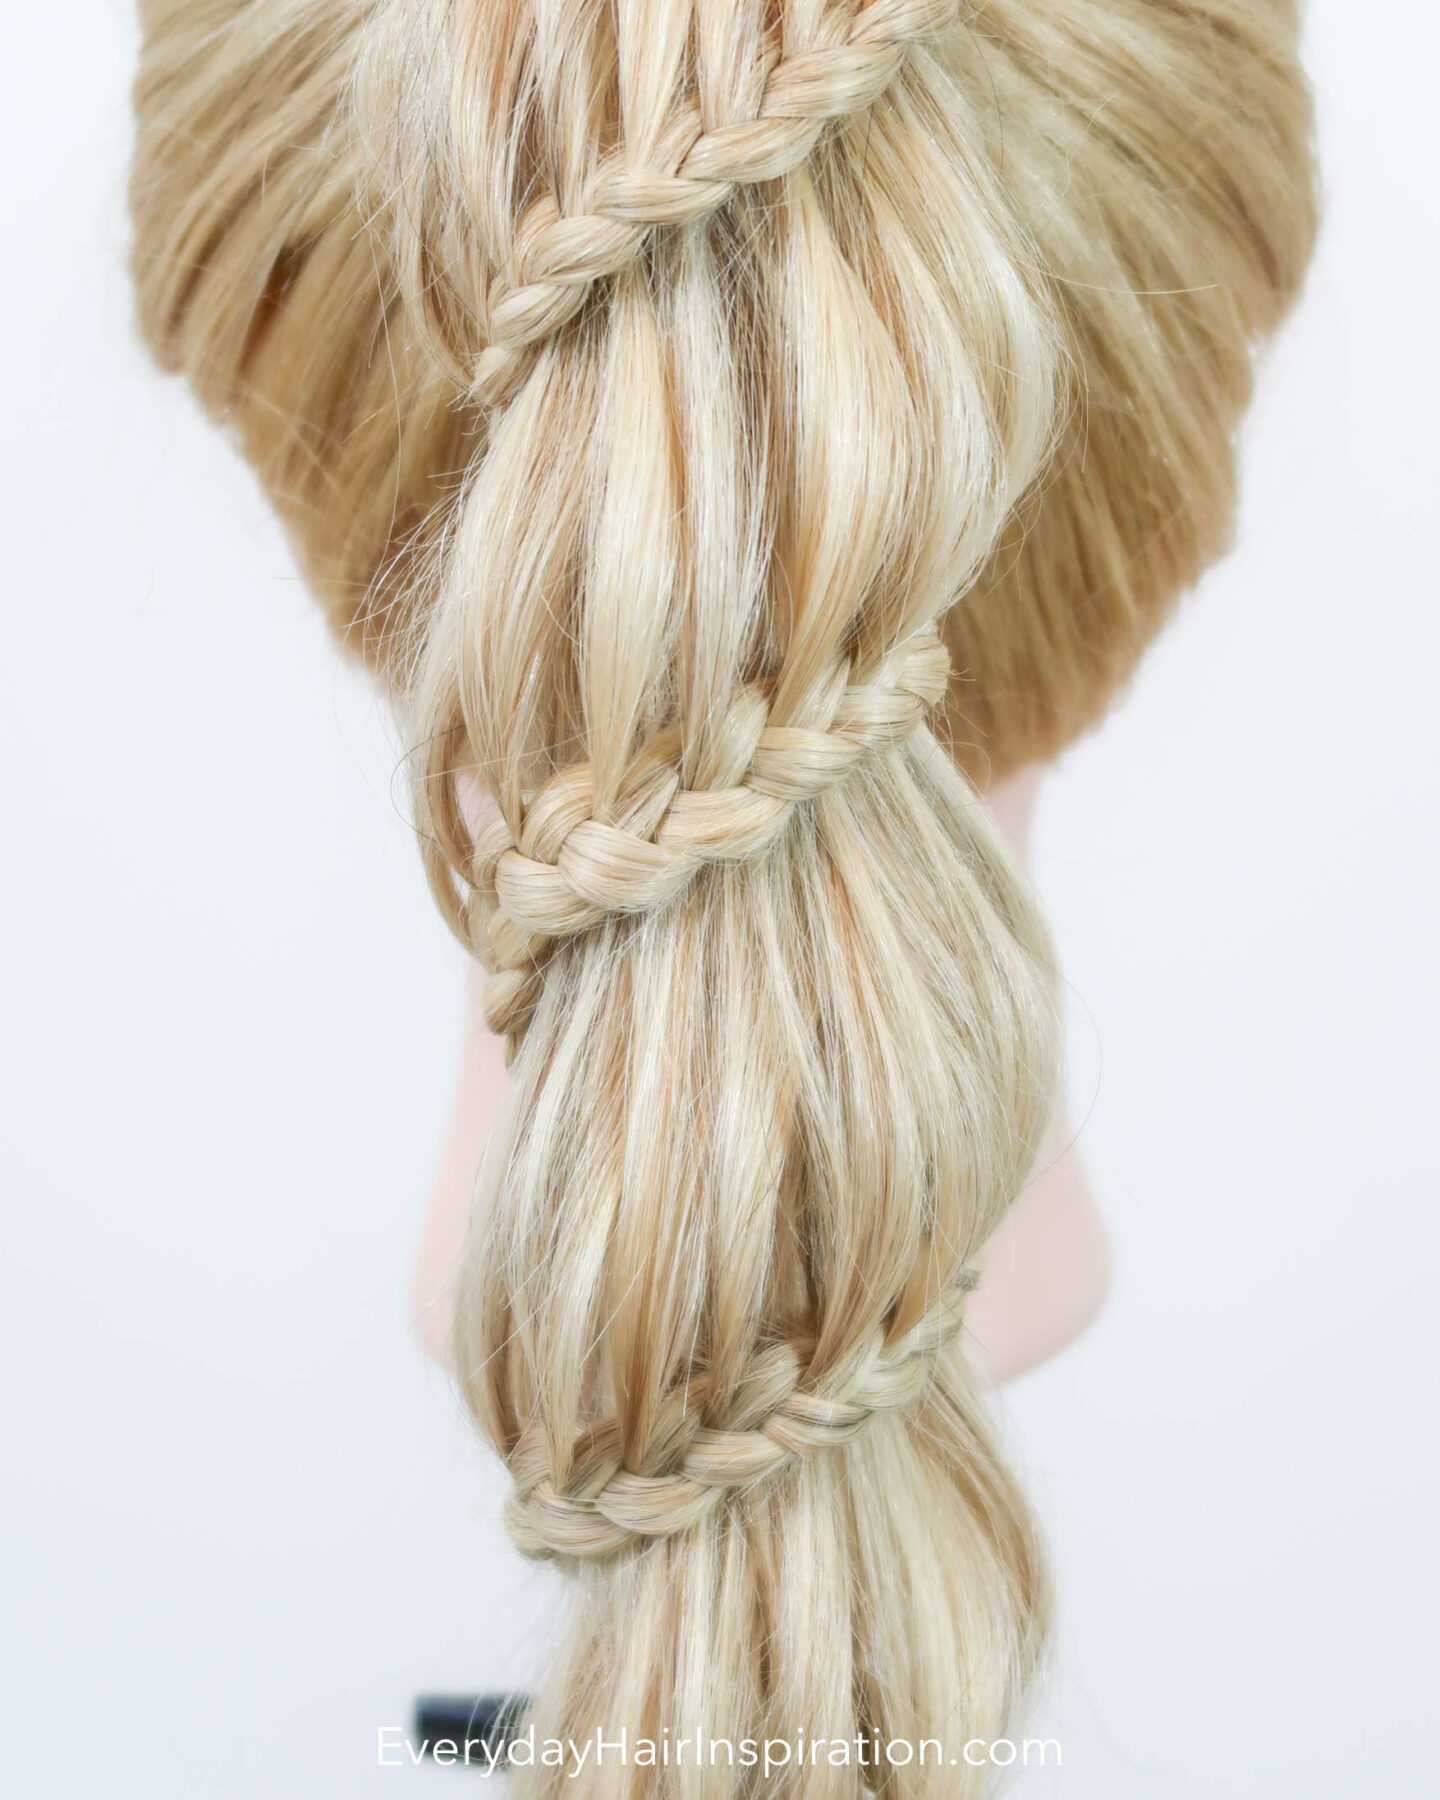 Blonde hairdresser doll seen from the back with a high ponytail. The ponytail is braided into a spiral braid, the wraps around the ponytail all the way down. Closeup of the braid.